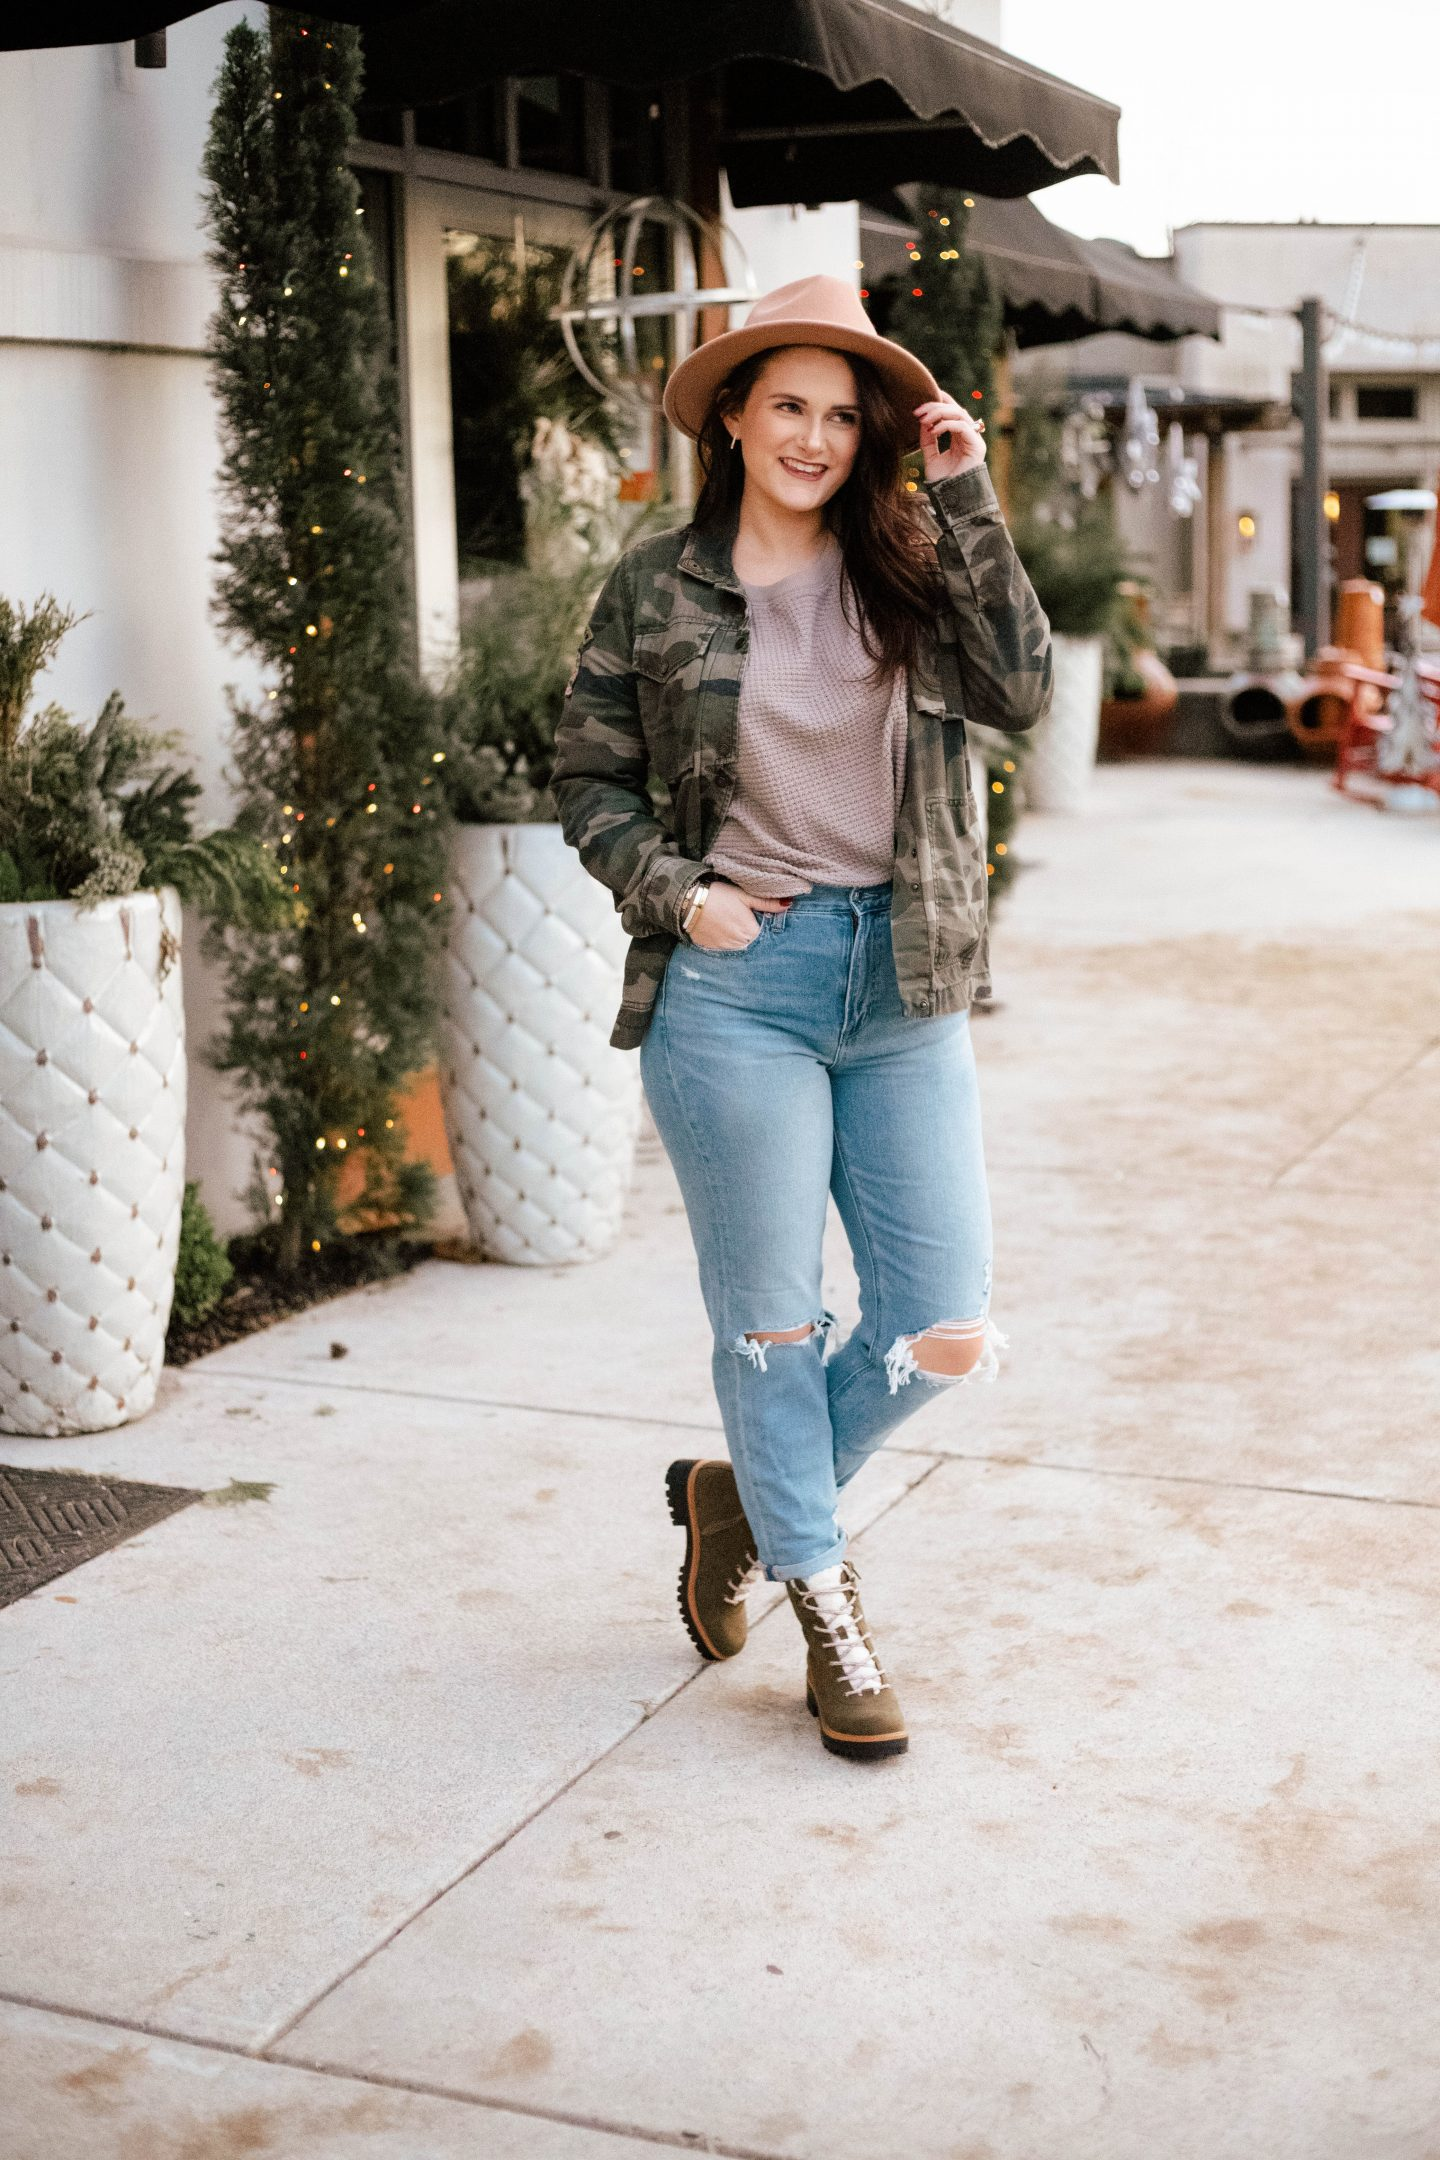 My New Favorite Jeans & Boots — And Why You Need Them In Your Closet